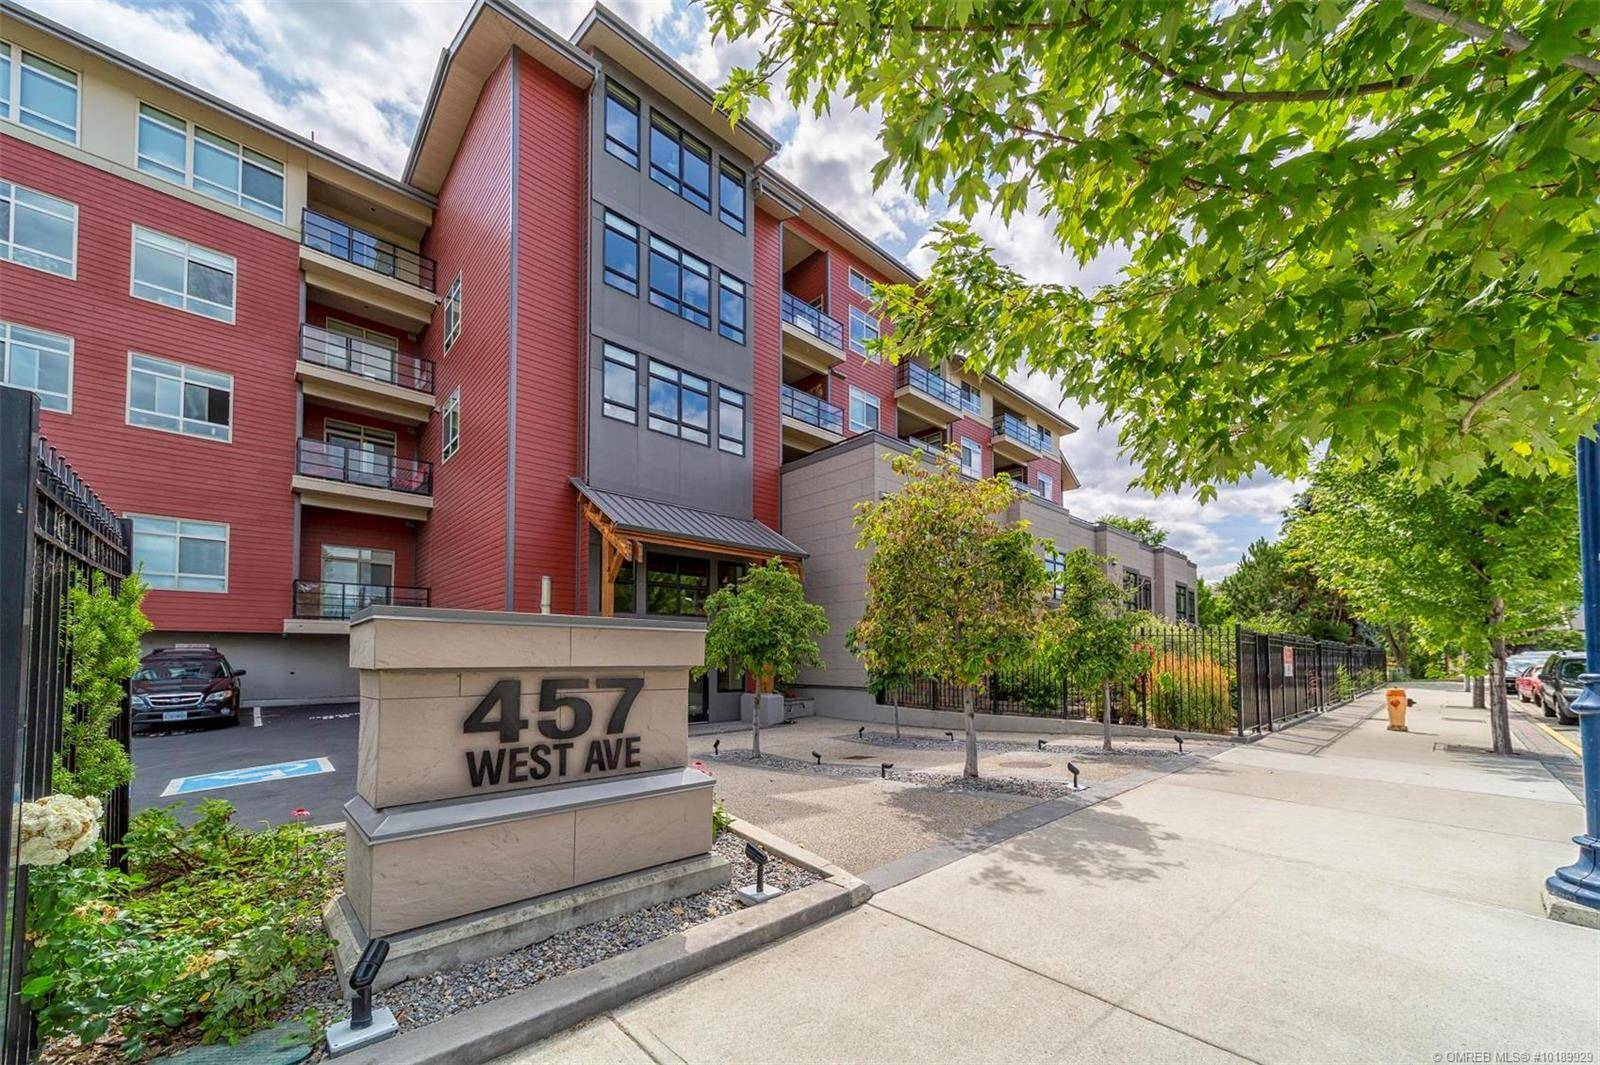 Condo for sale at 457 West Ave Unit 205 Kelowna British Columbia - MLS: 10189929